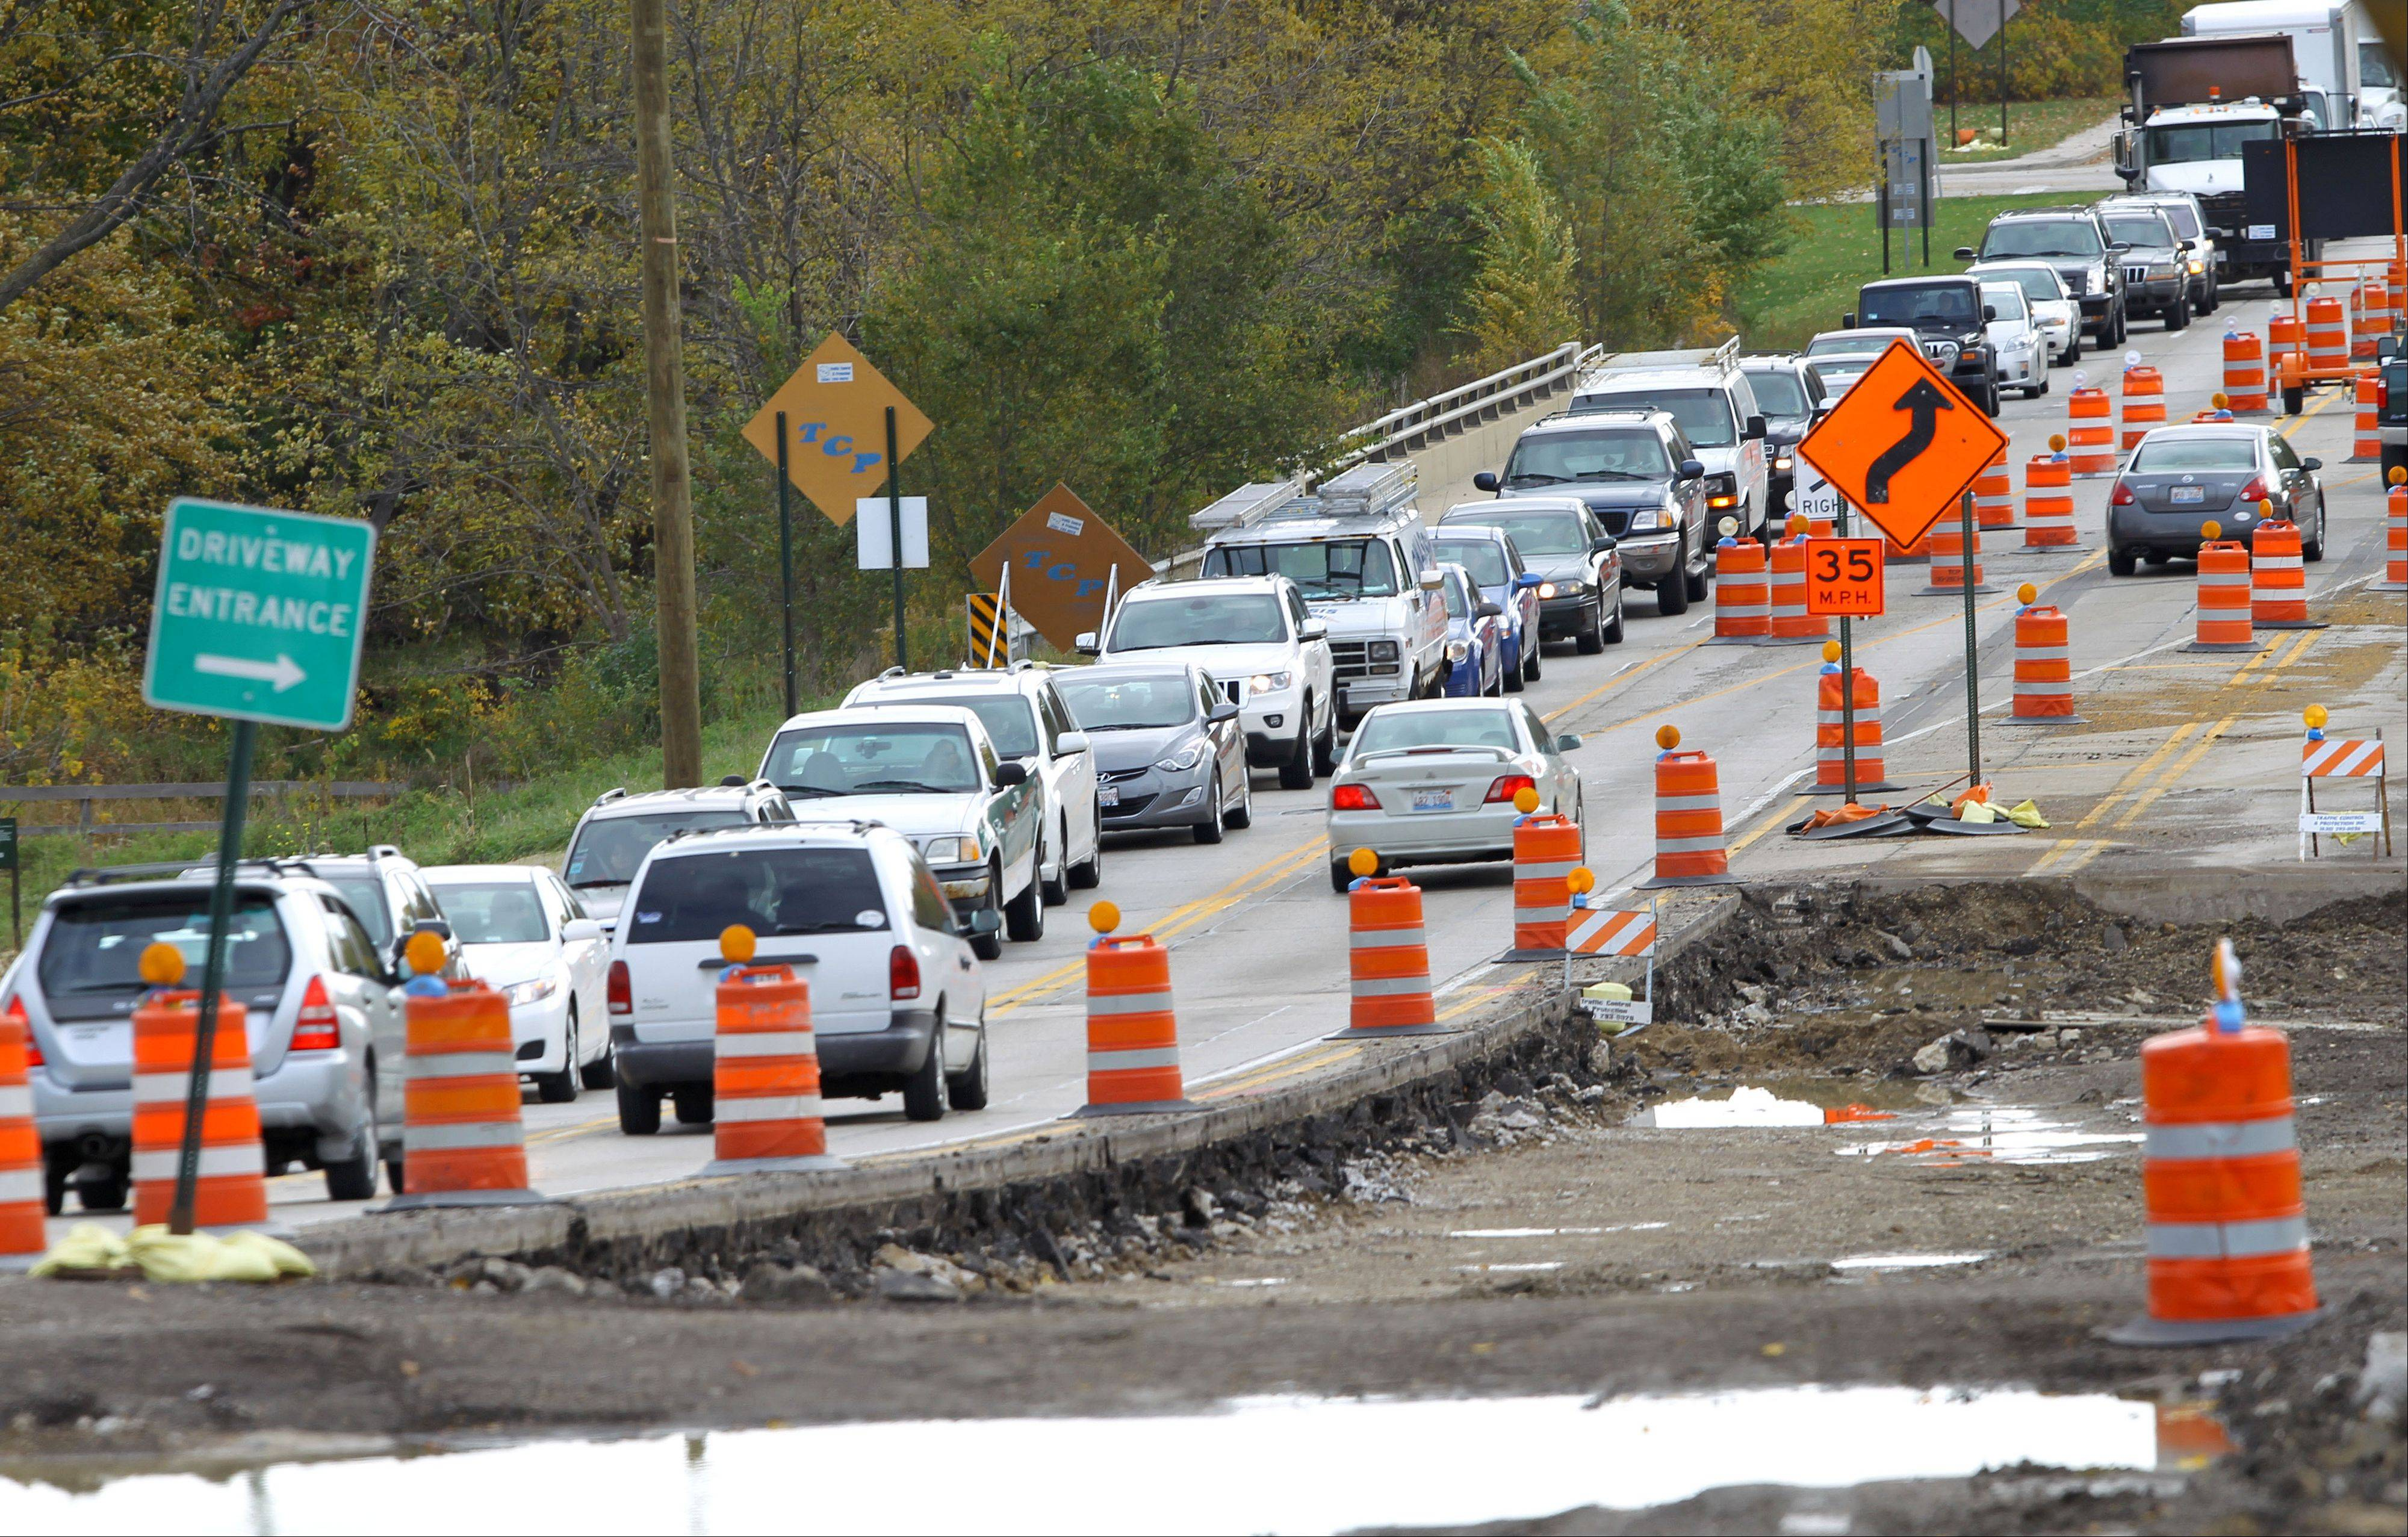 Roadwork a drag on Libertyville businesses